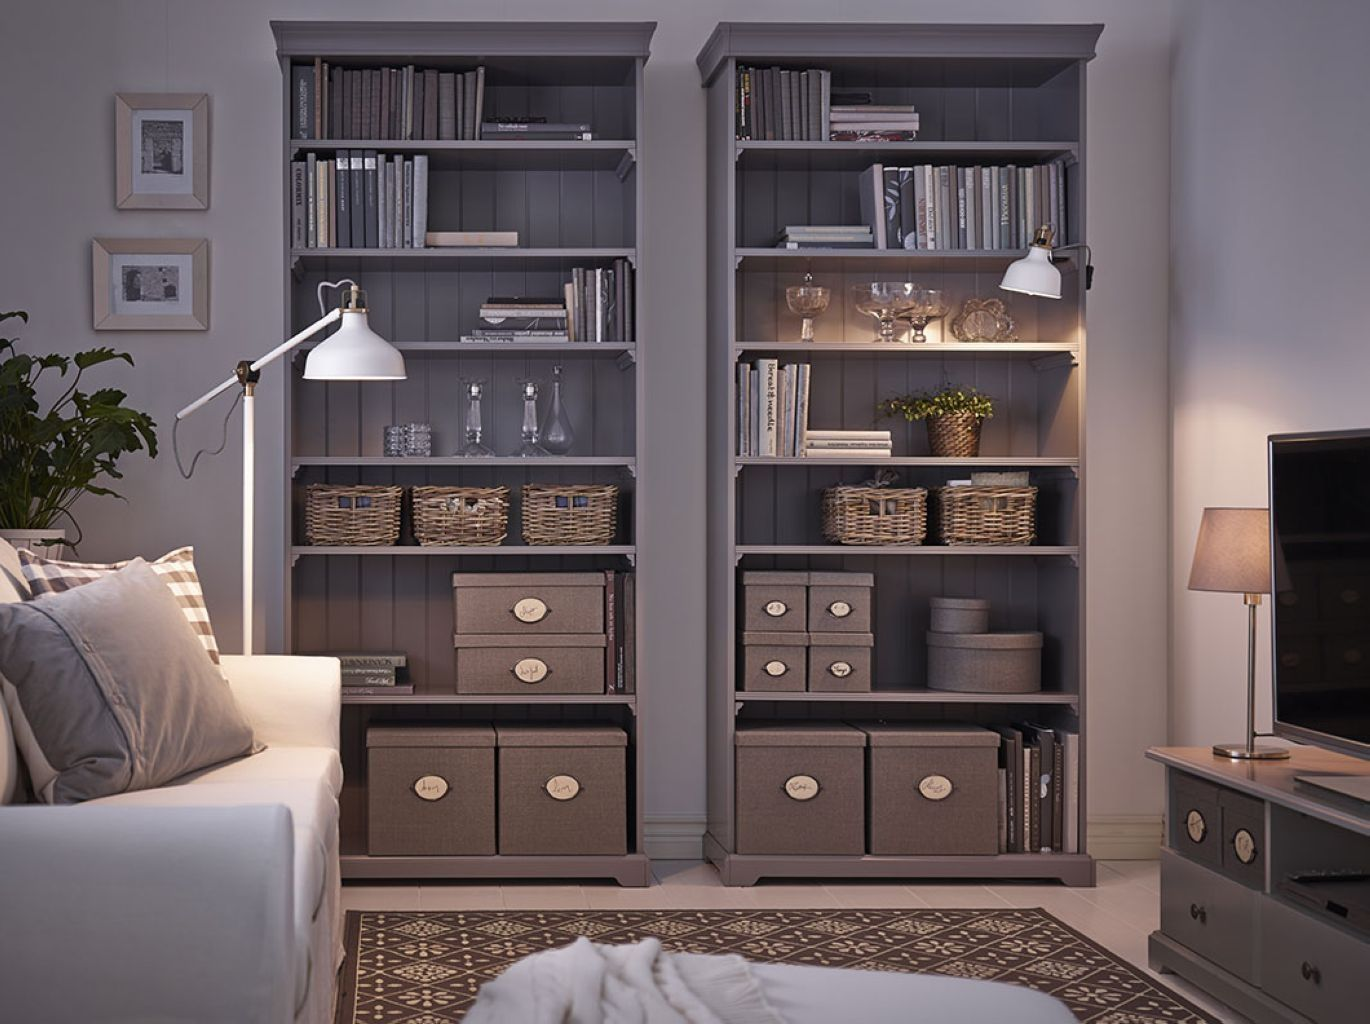 bookcase furniture display cabinets home breathtaking design ikea image liatorp